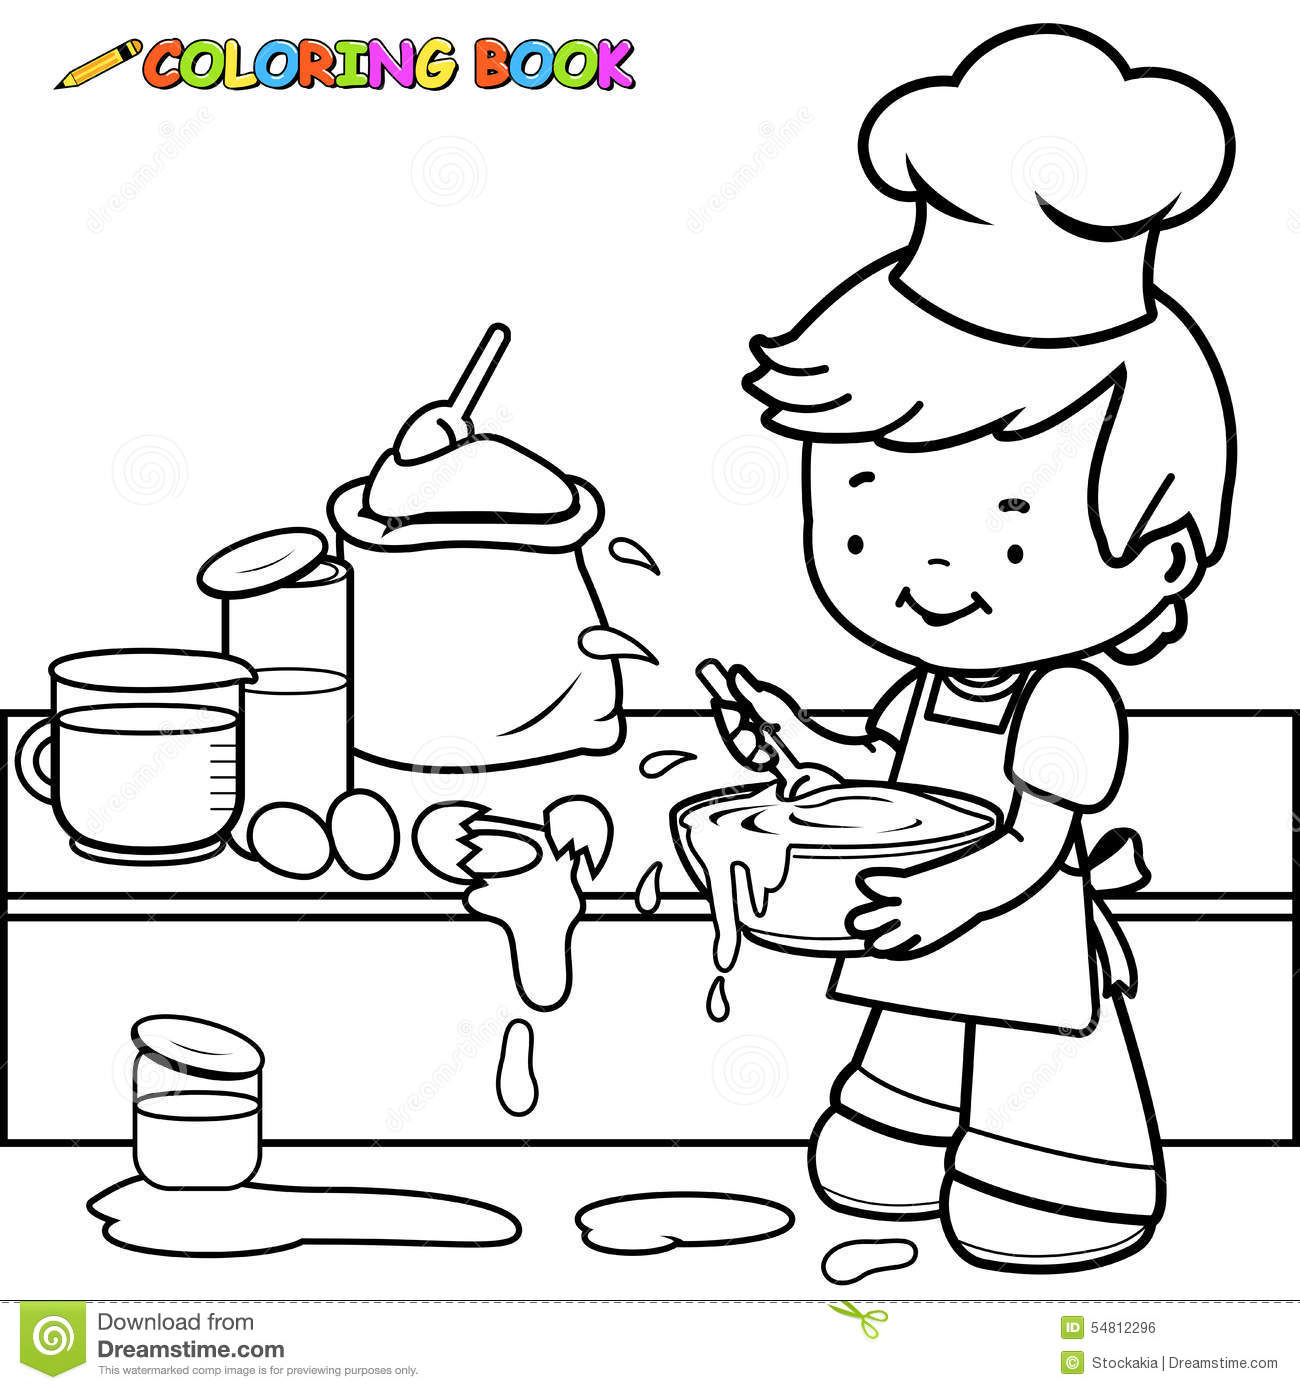 Stock Illustration Boy Cooking Making Mess Coloring Page Vector Illustration Black White Outline Image Little Kitchen Image54812296 on baking cartoon